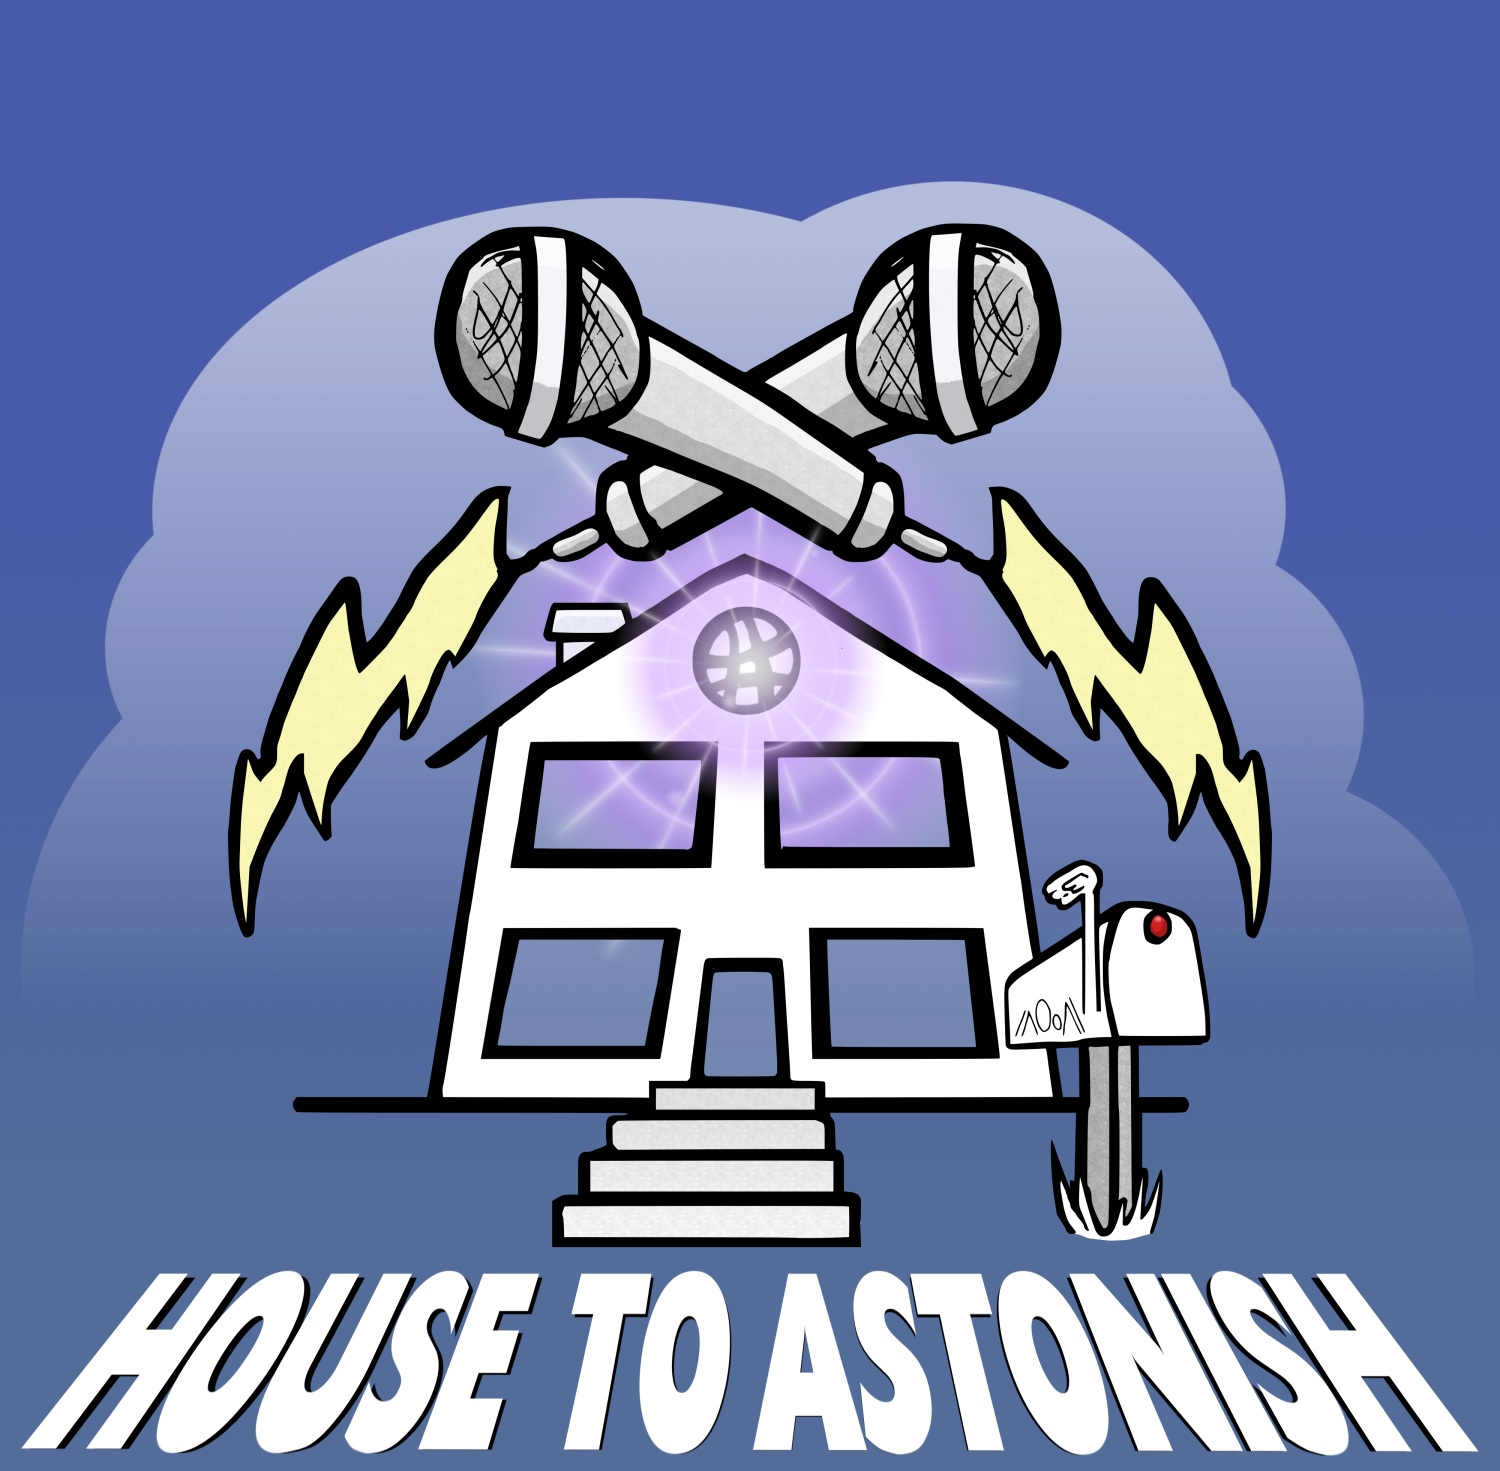 House to Astonish - Episode 72 - Broken Biscuits